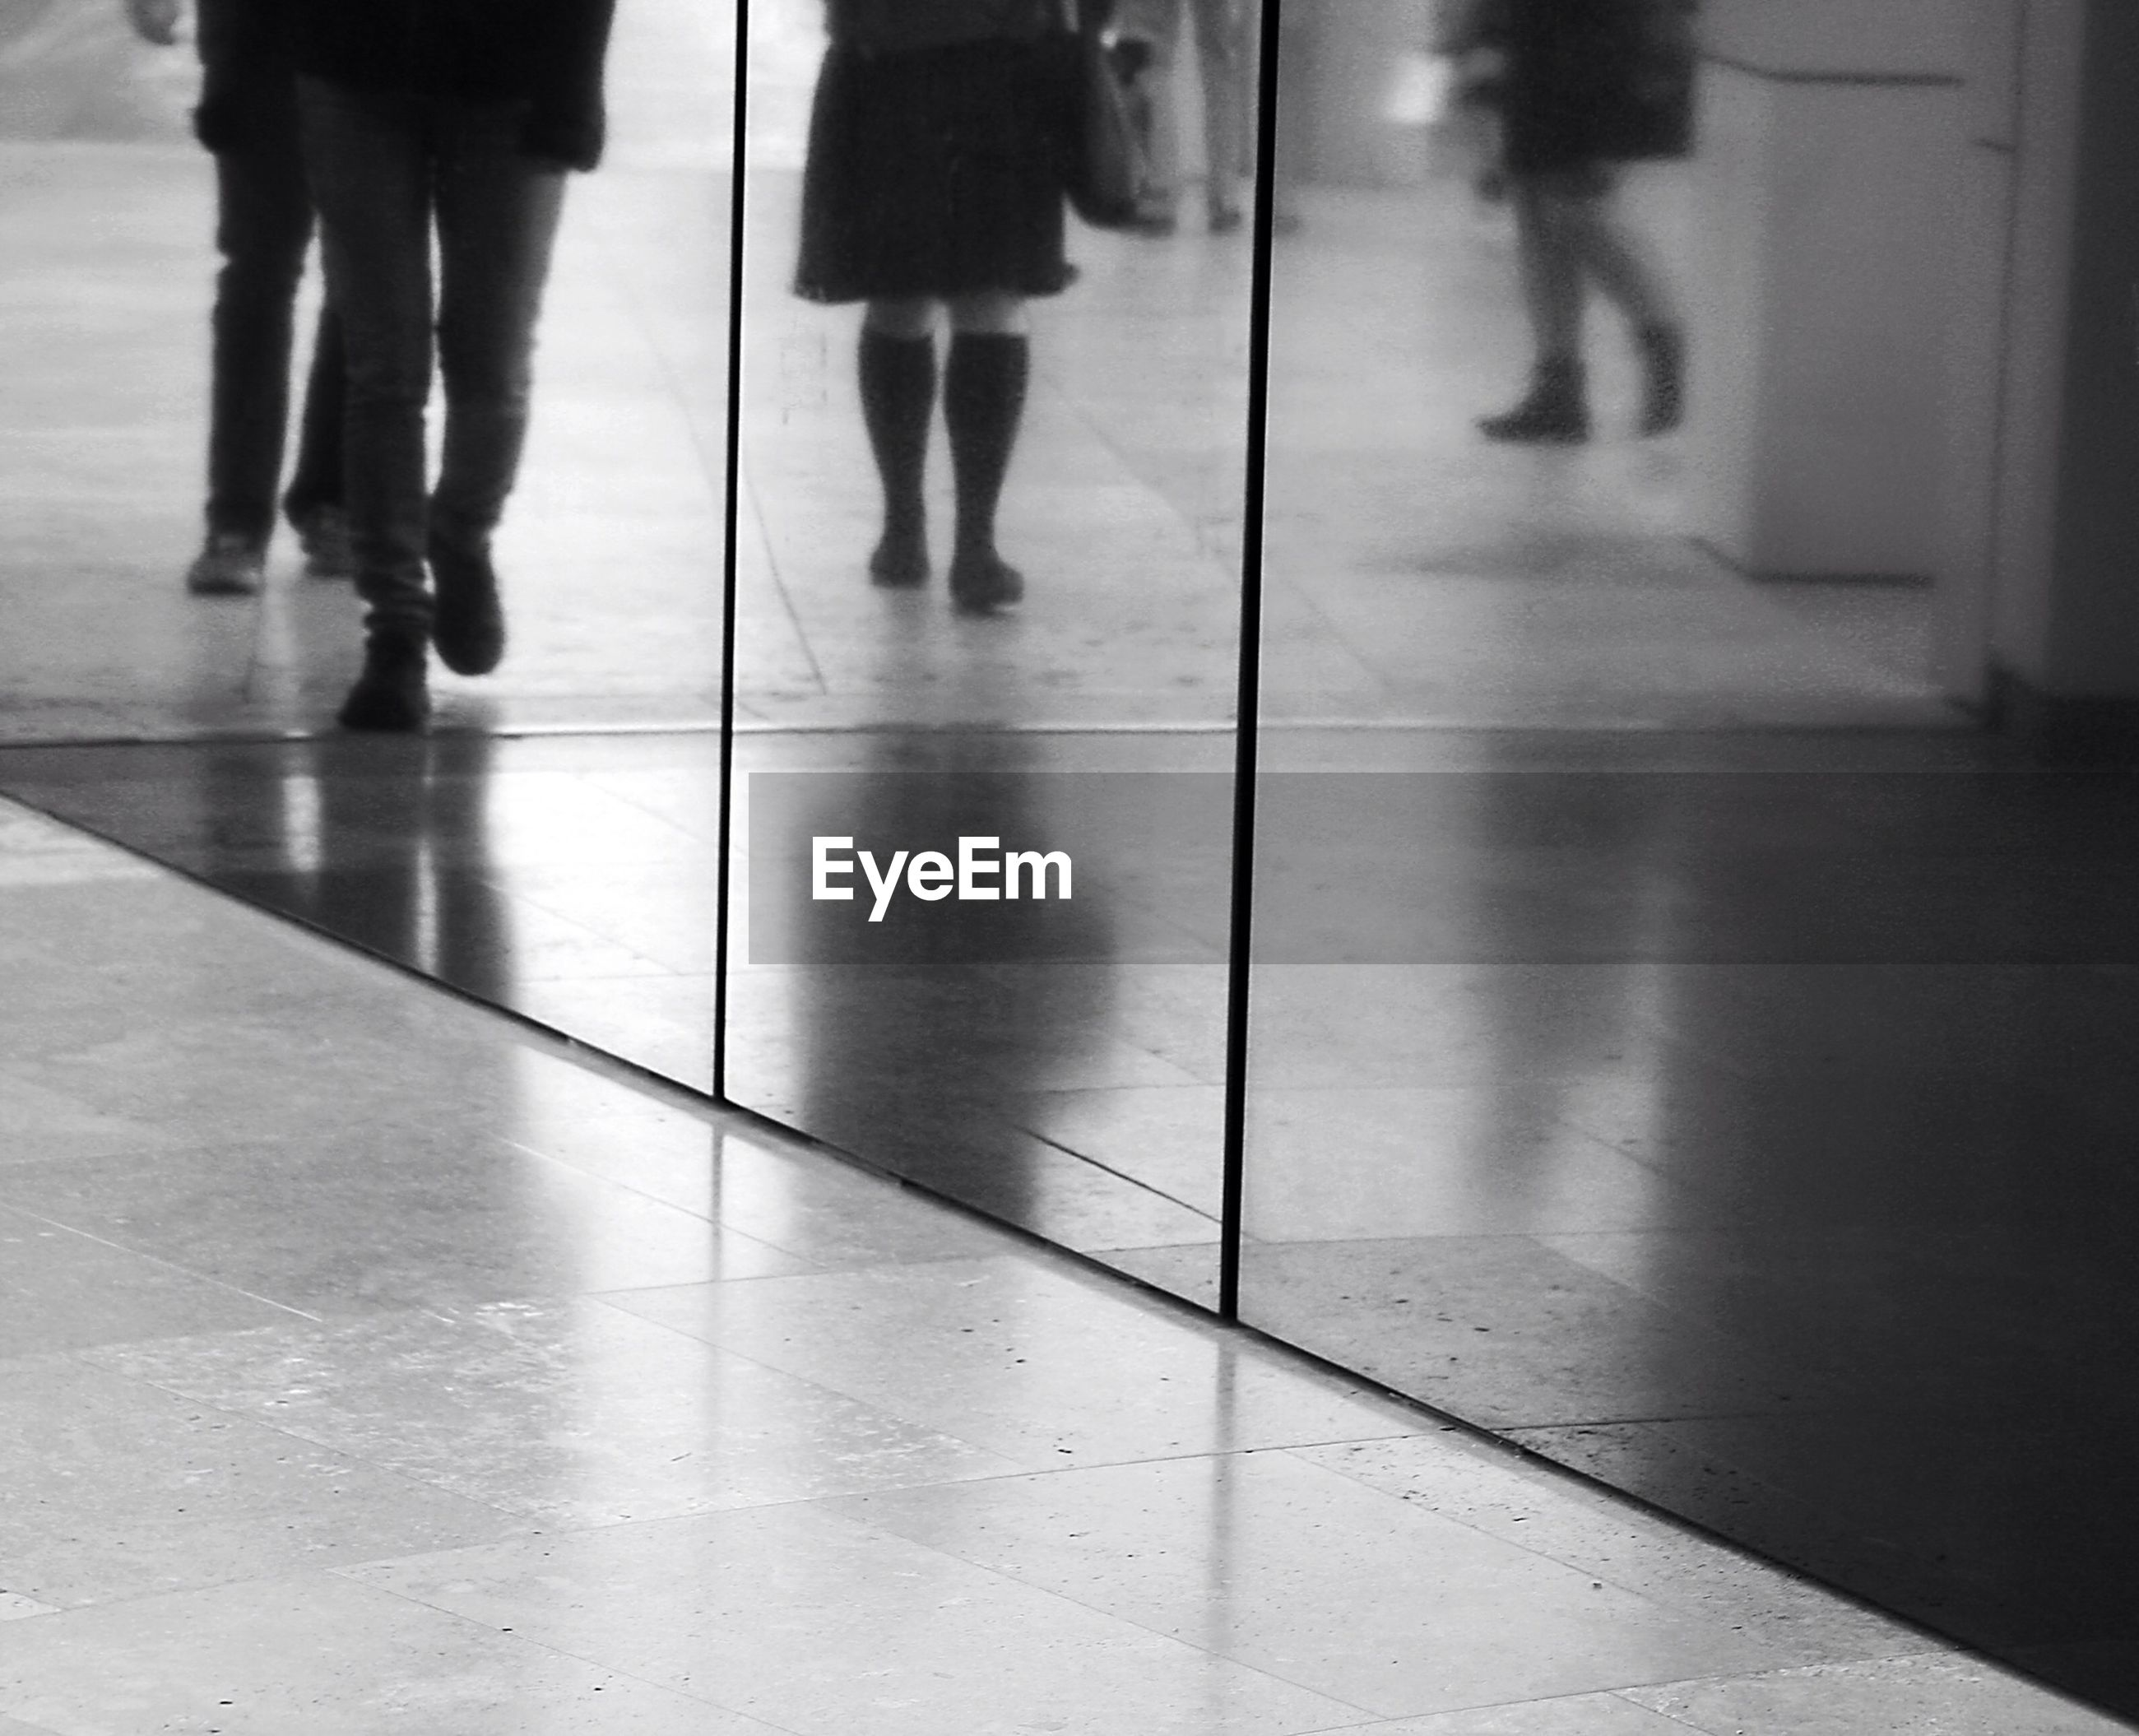 Reflection of people on glass